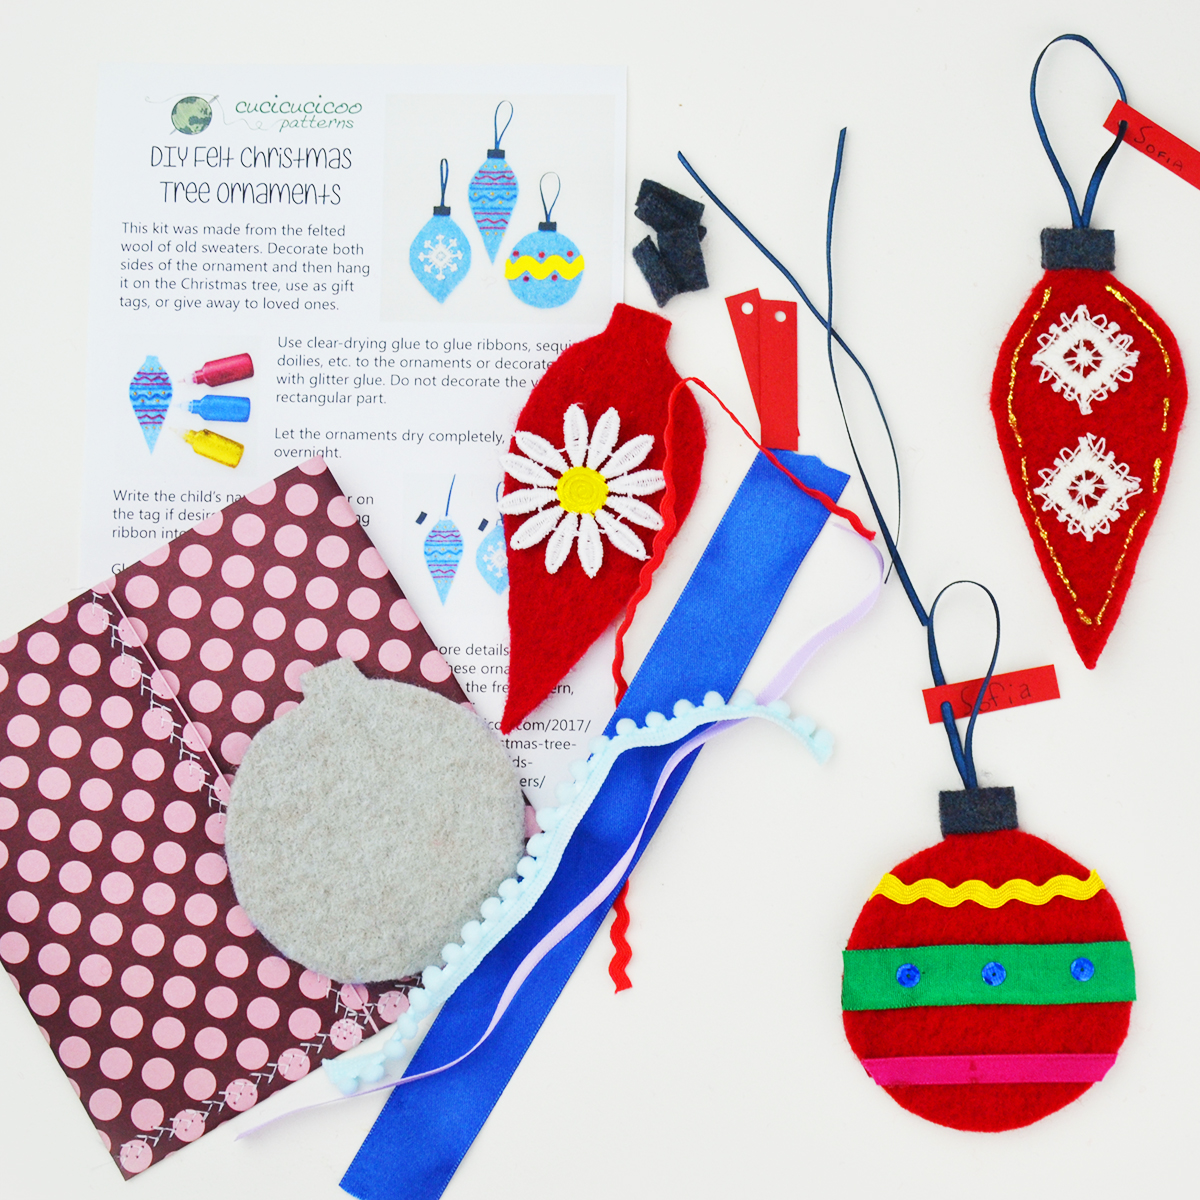 Looking for a fun and crafty gift for the kids in your life? These DIY Christmas ornament kits are easy to make with scraps of felt or felted wool sweaters and bits of ribbon. Package them up with the printable instruction sheet, and the children can make their own personalized baubles to hang on the tree! #diychristmas #diycraftkit #diycraftkits